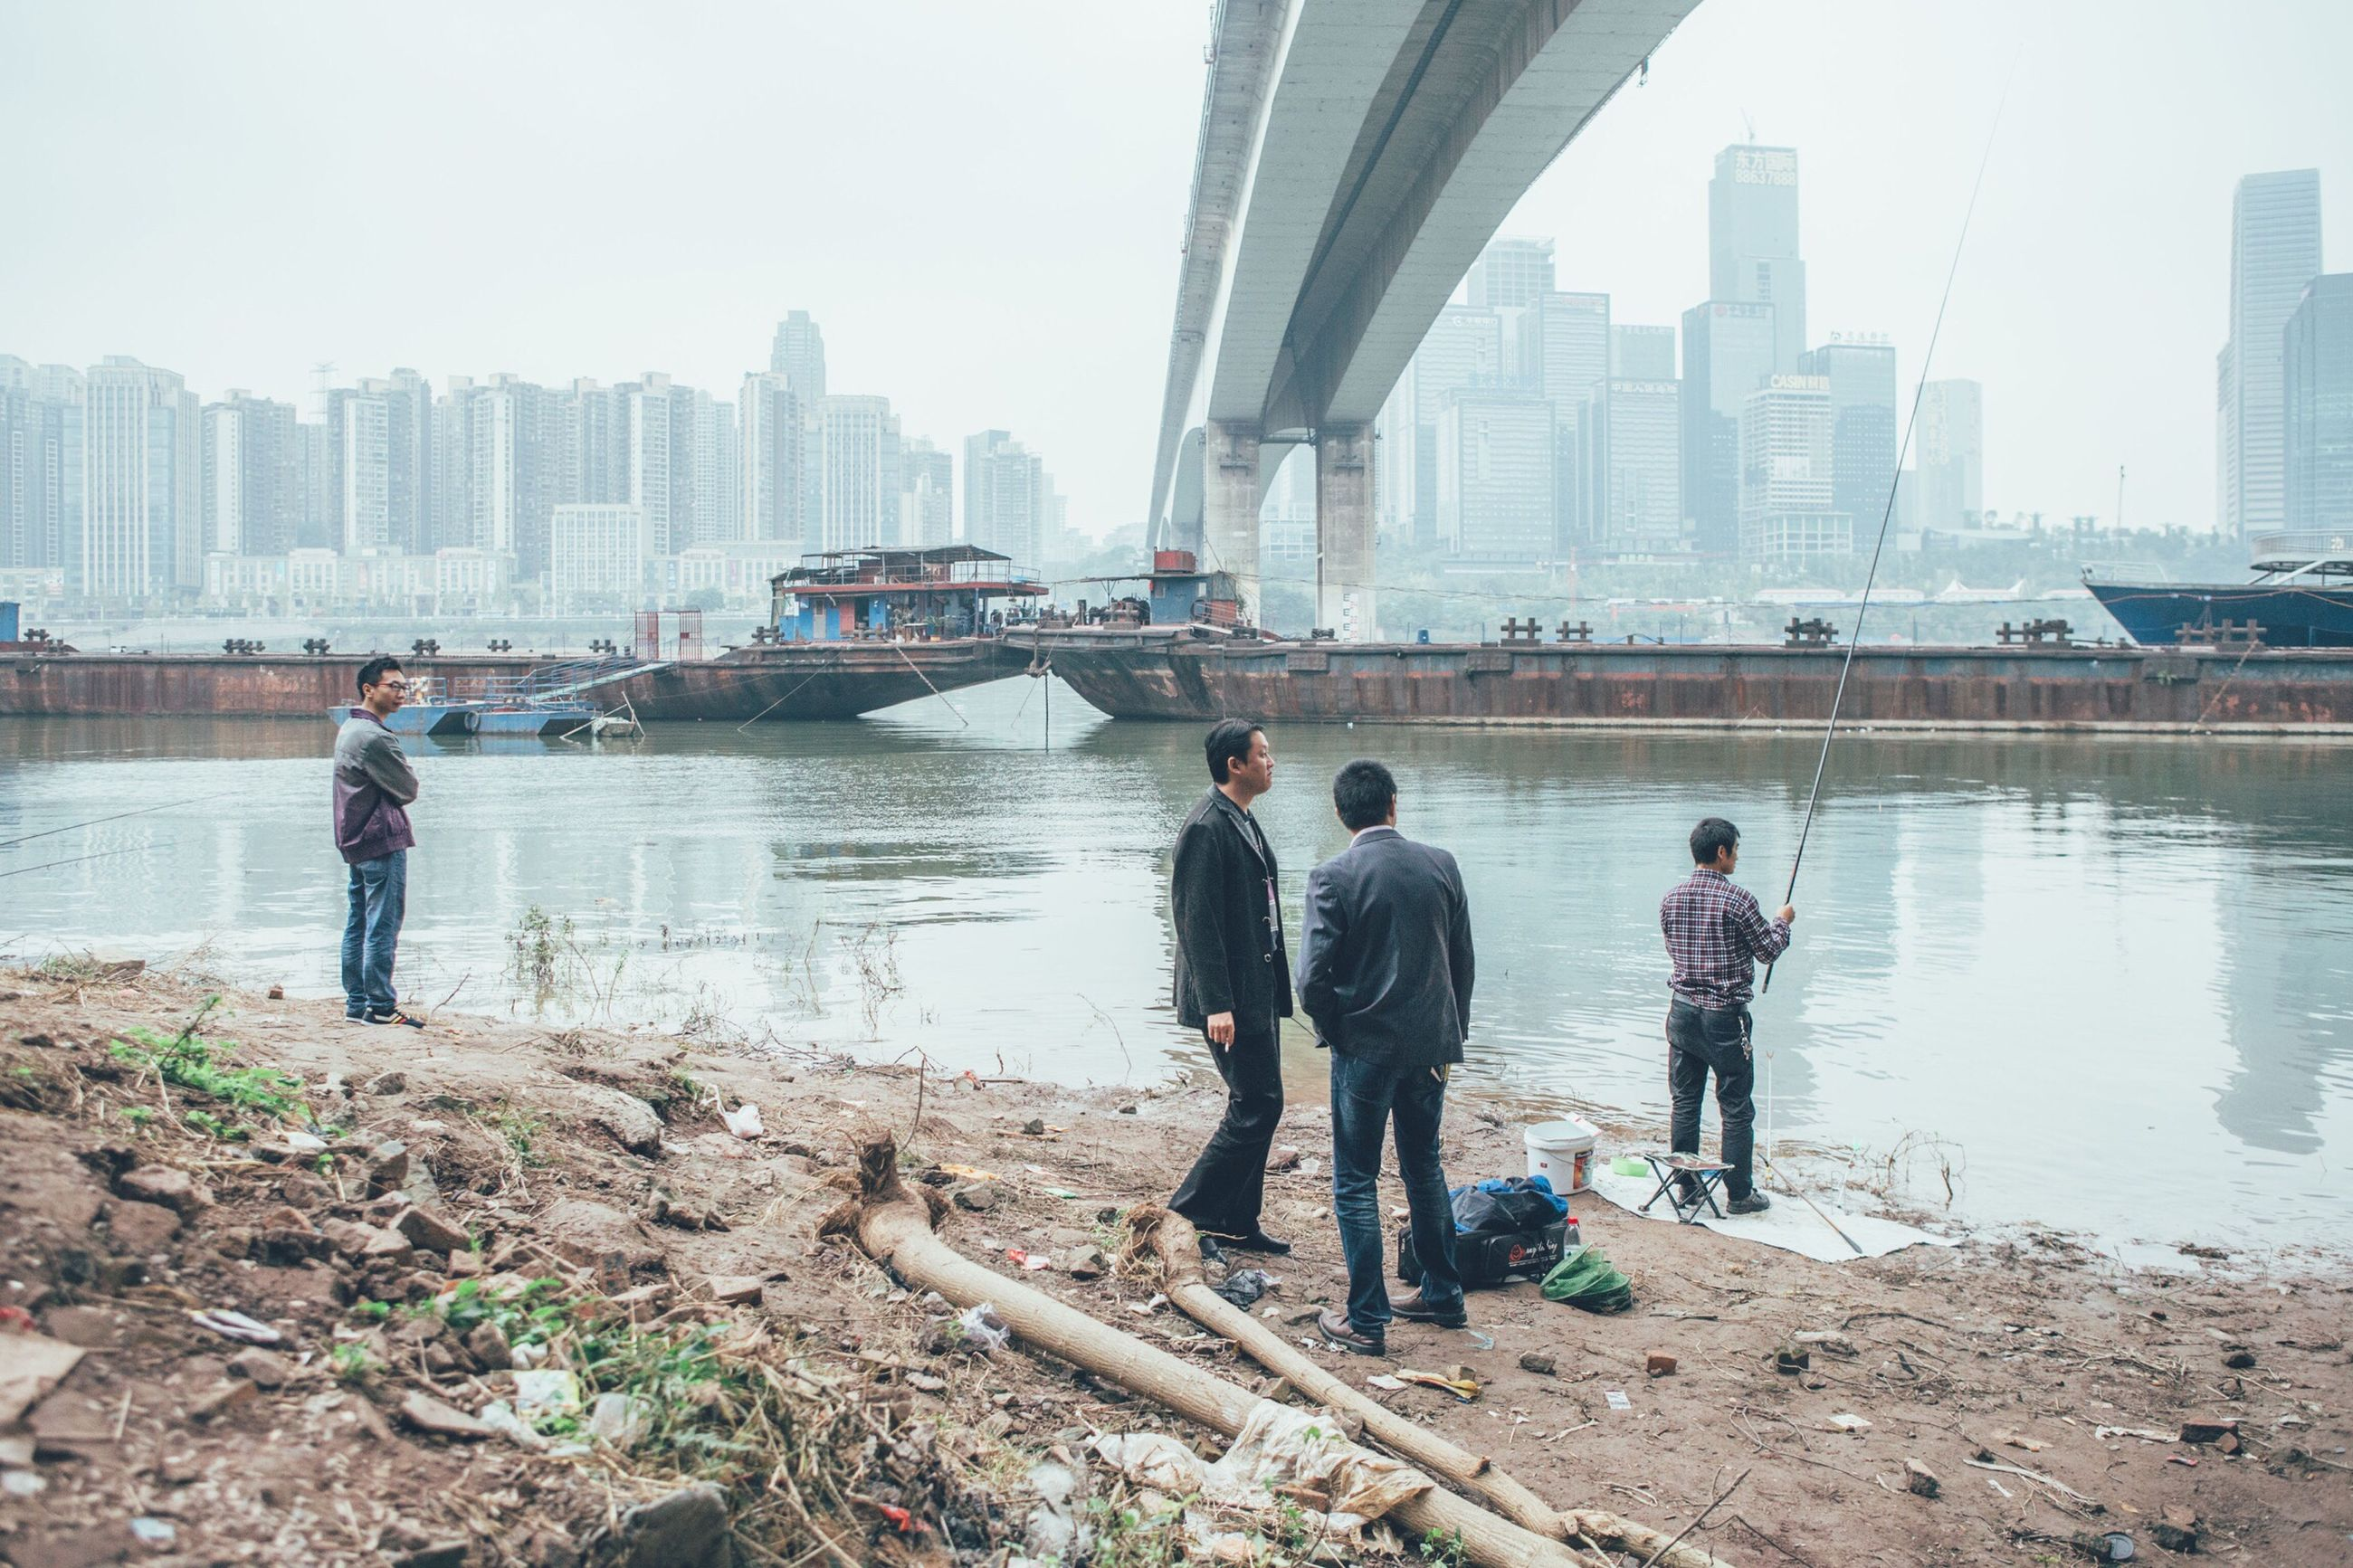 building exterior, architecture, real people, built structure, leisure activity, lifestyles, river, city, water, skyscraper, togetherness, full length, bridge - man made structure, day, men, urban skyline, sky, outdoors, nature, cityscape, people